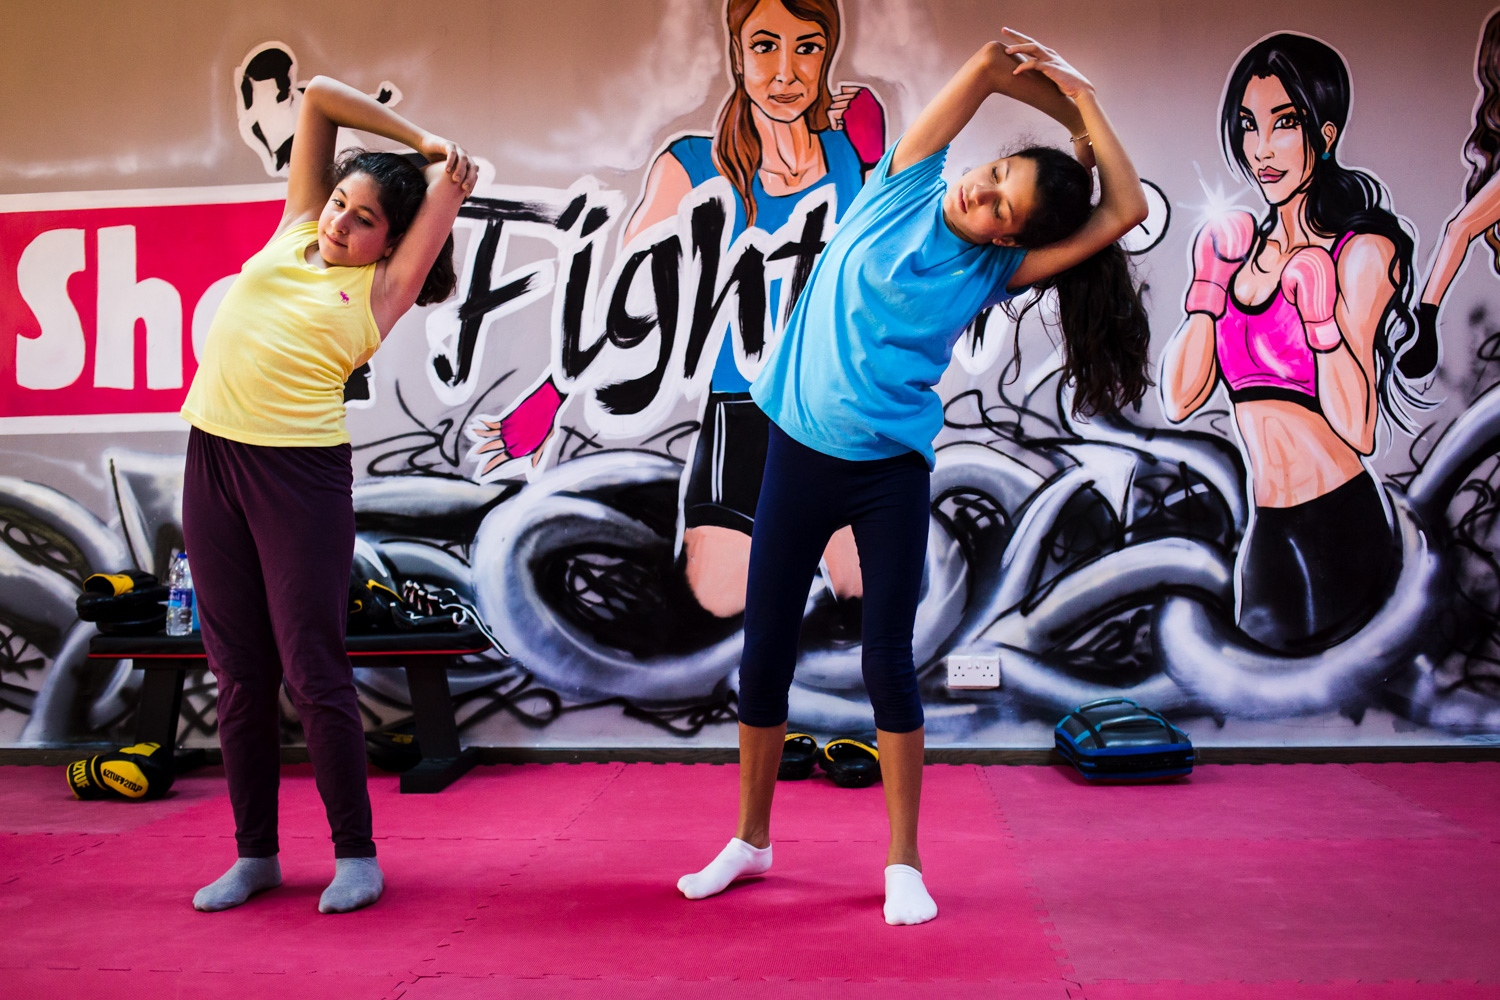 Sana Kayyali and Reem Habib stretch and do yoga poses in between kicking and punching exercises during a self defense class at She Fighter in Amman, Jordan, on August 21, 2015. The She Fighter studio was founded by Lina Khalifeh, and offers self defense classes to young women to protect against harassment.